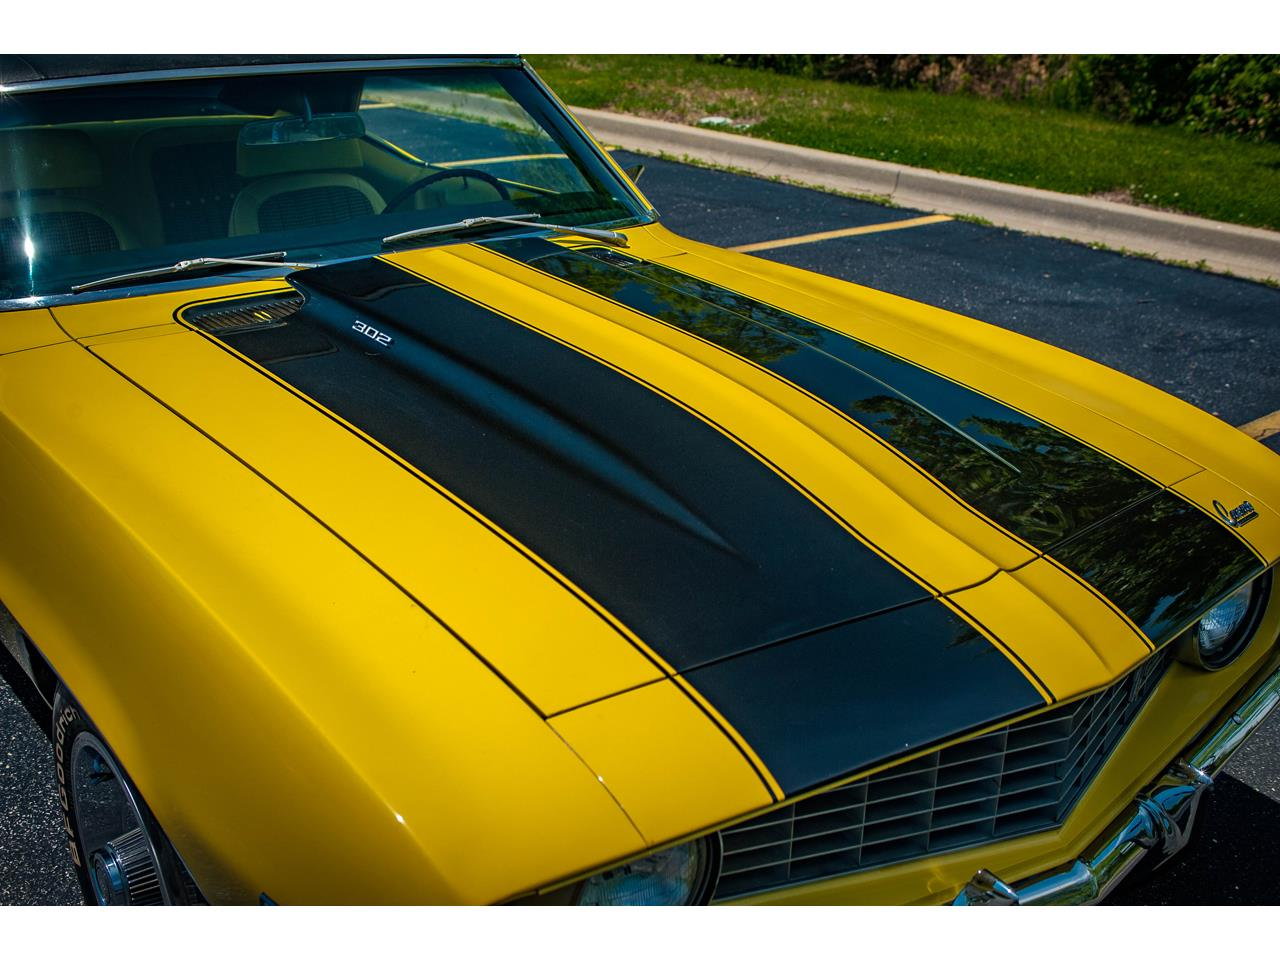 Large Picture of Classic '69 Camaro located in Illinois Offered by Gateway Classic Cars - St. Louis - QB9B